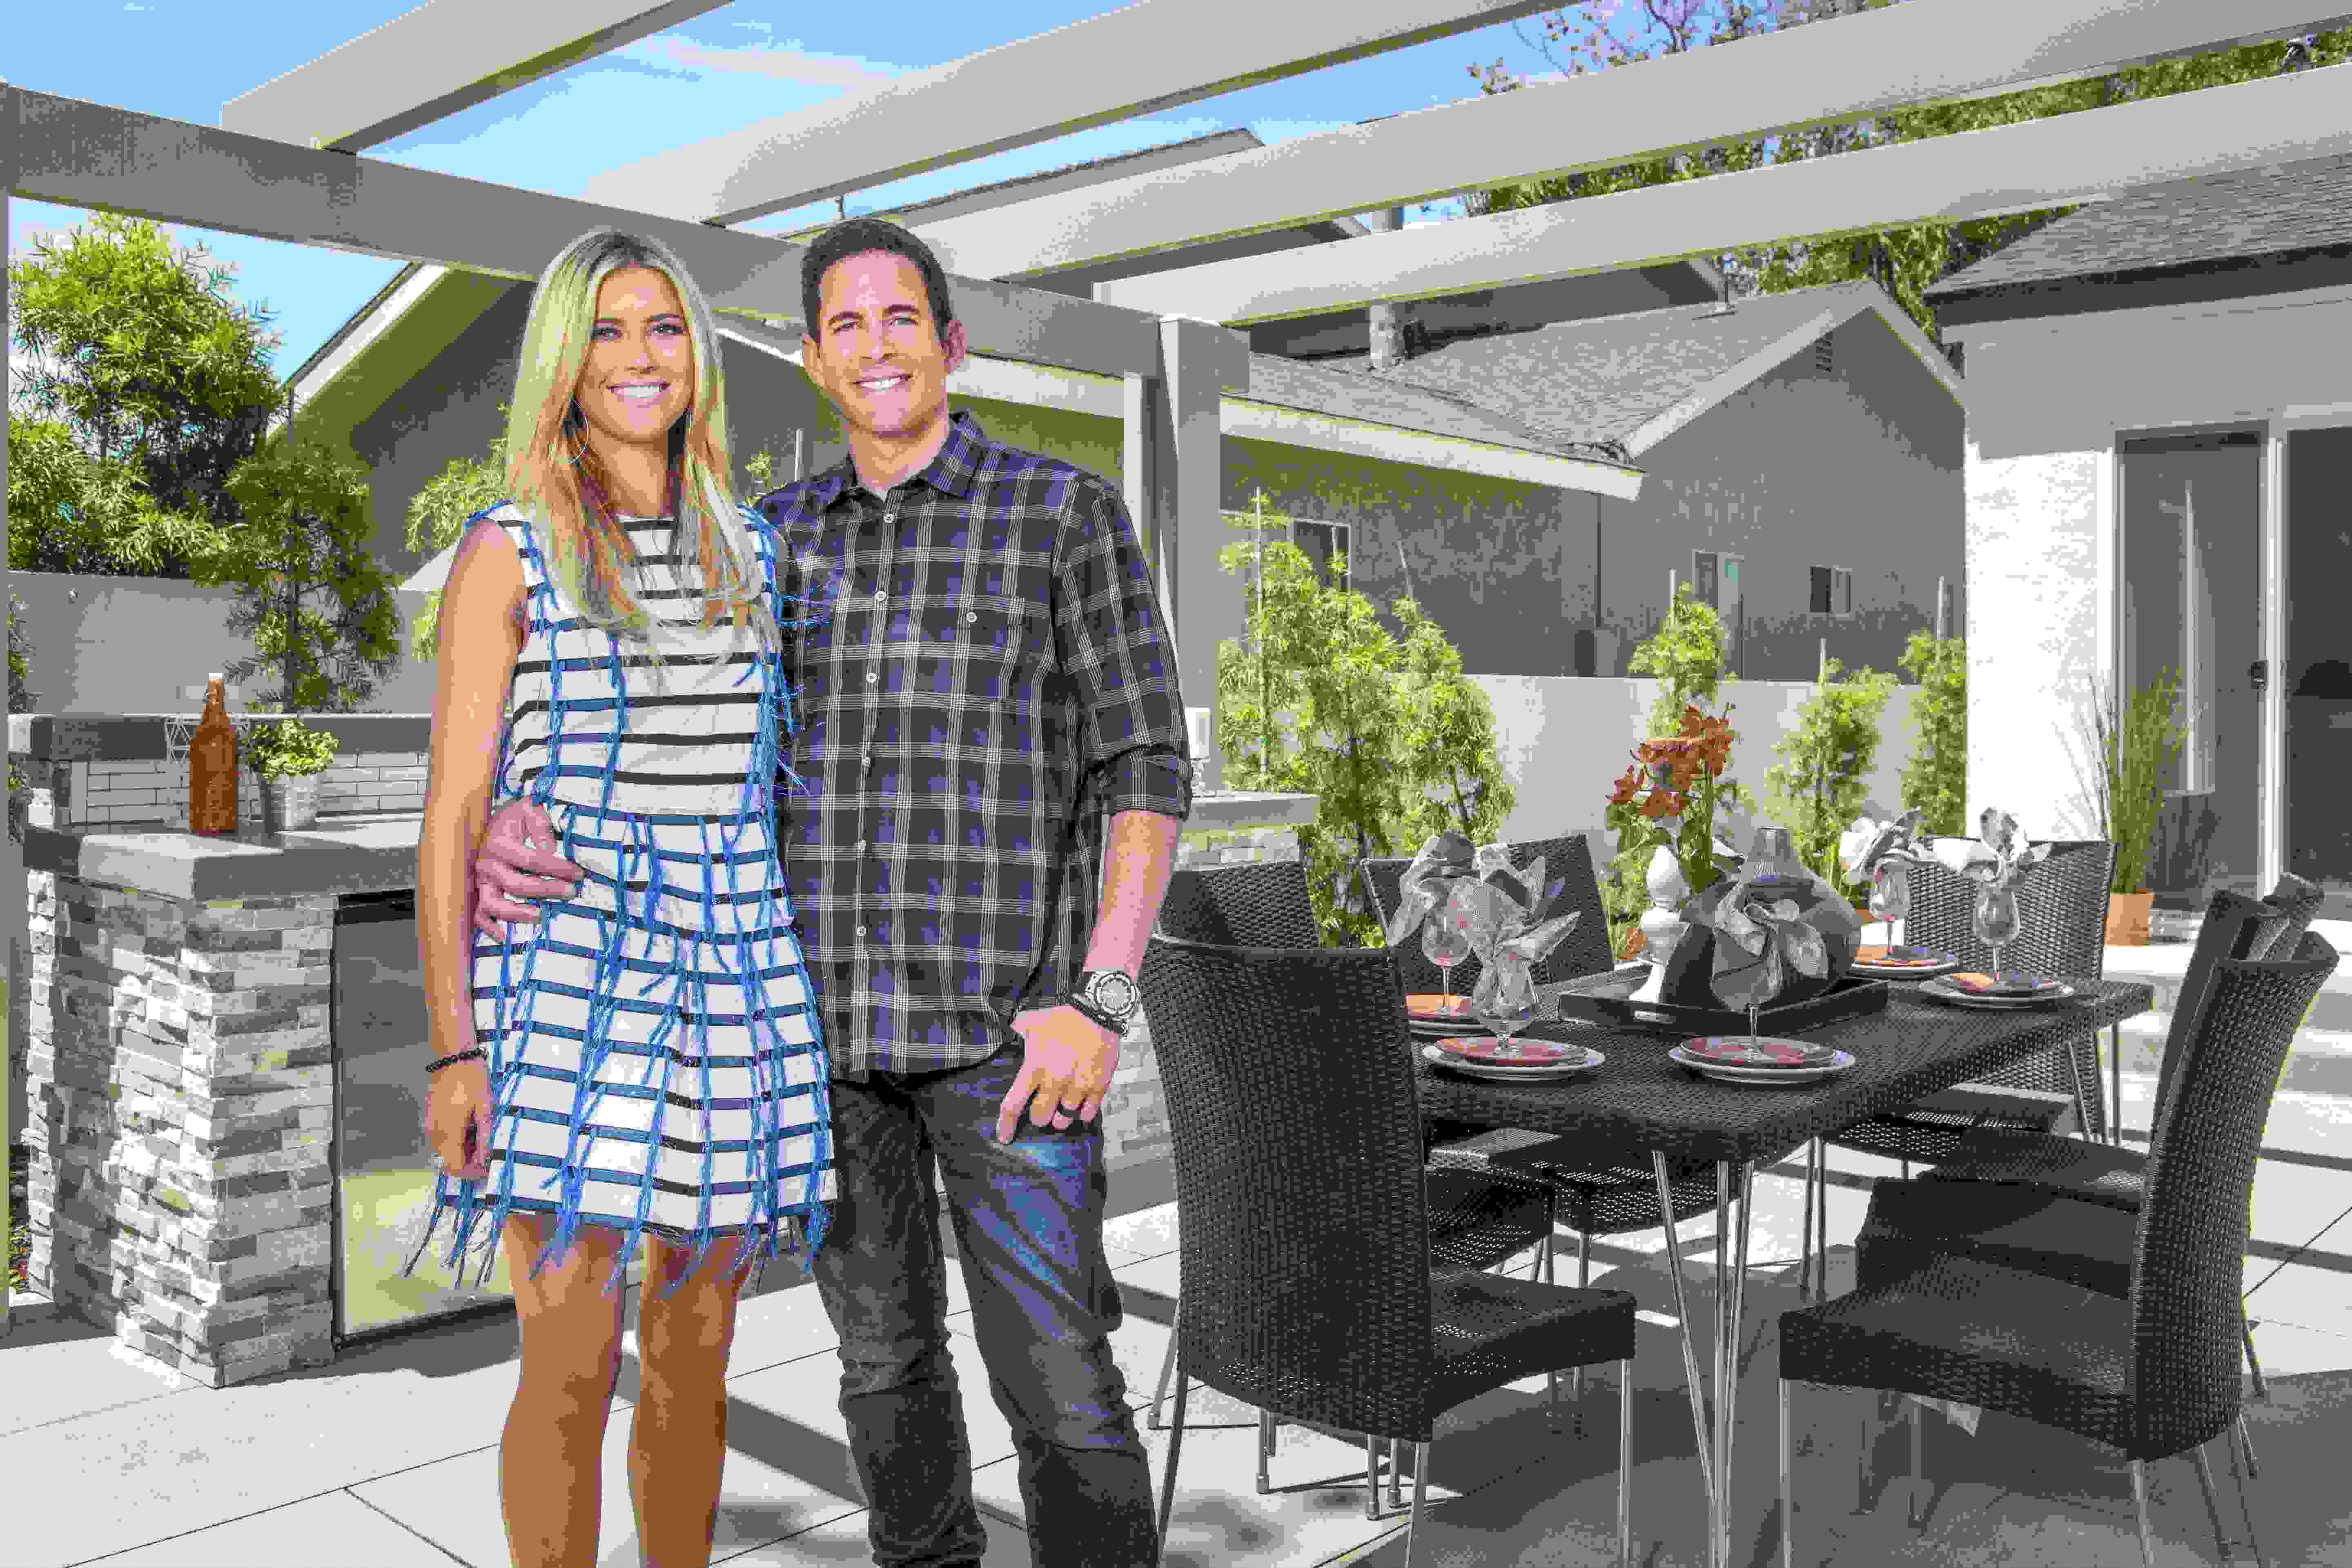 Christina and Tarek El Moussa of Flip or Flop